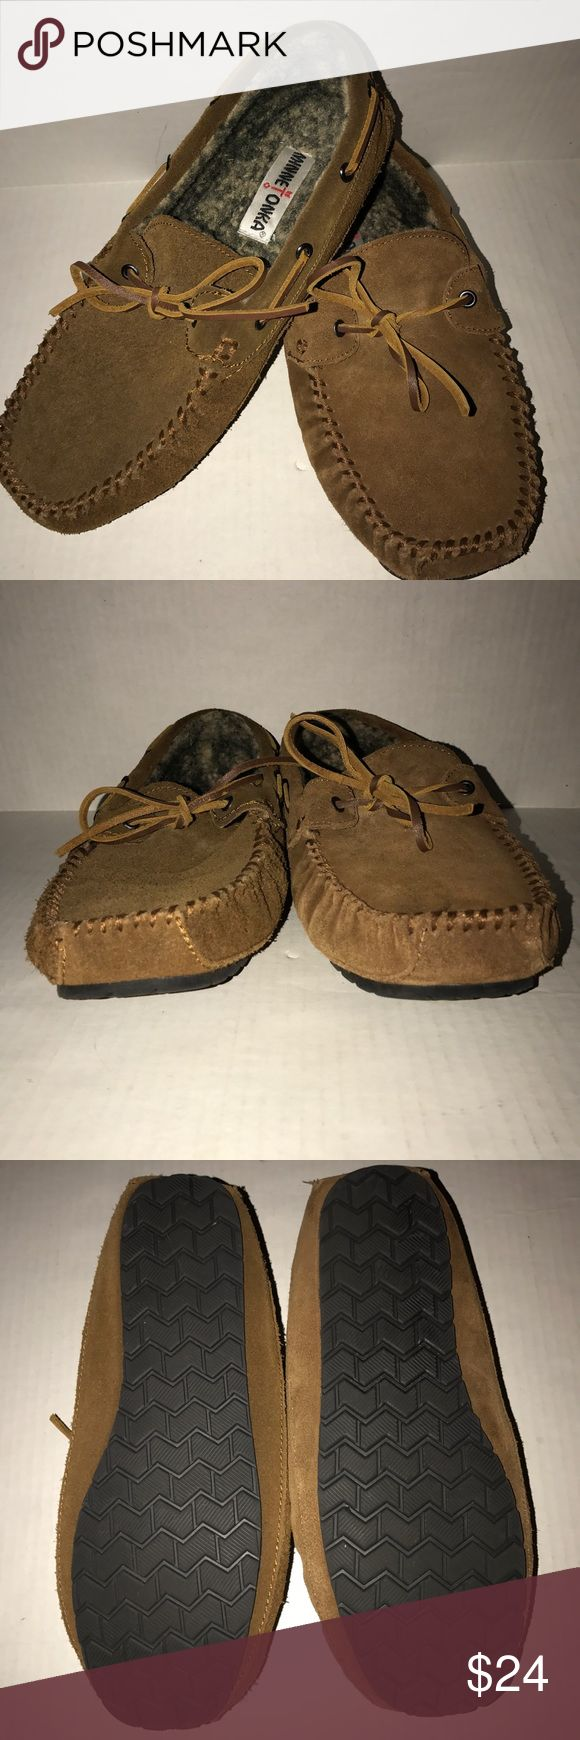 Minnetonka moccasins slippers men's slip on Mocs 9 New men's size 9 Minnetonka camel brown suede Mocs. Super comfy and soft interior fur lining. Slip on with soled bottoms. Comes from smoke and pet free home. Minnetonka Shoes Loafers & Slip-Ons